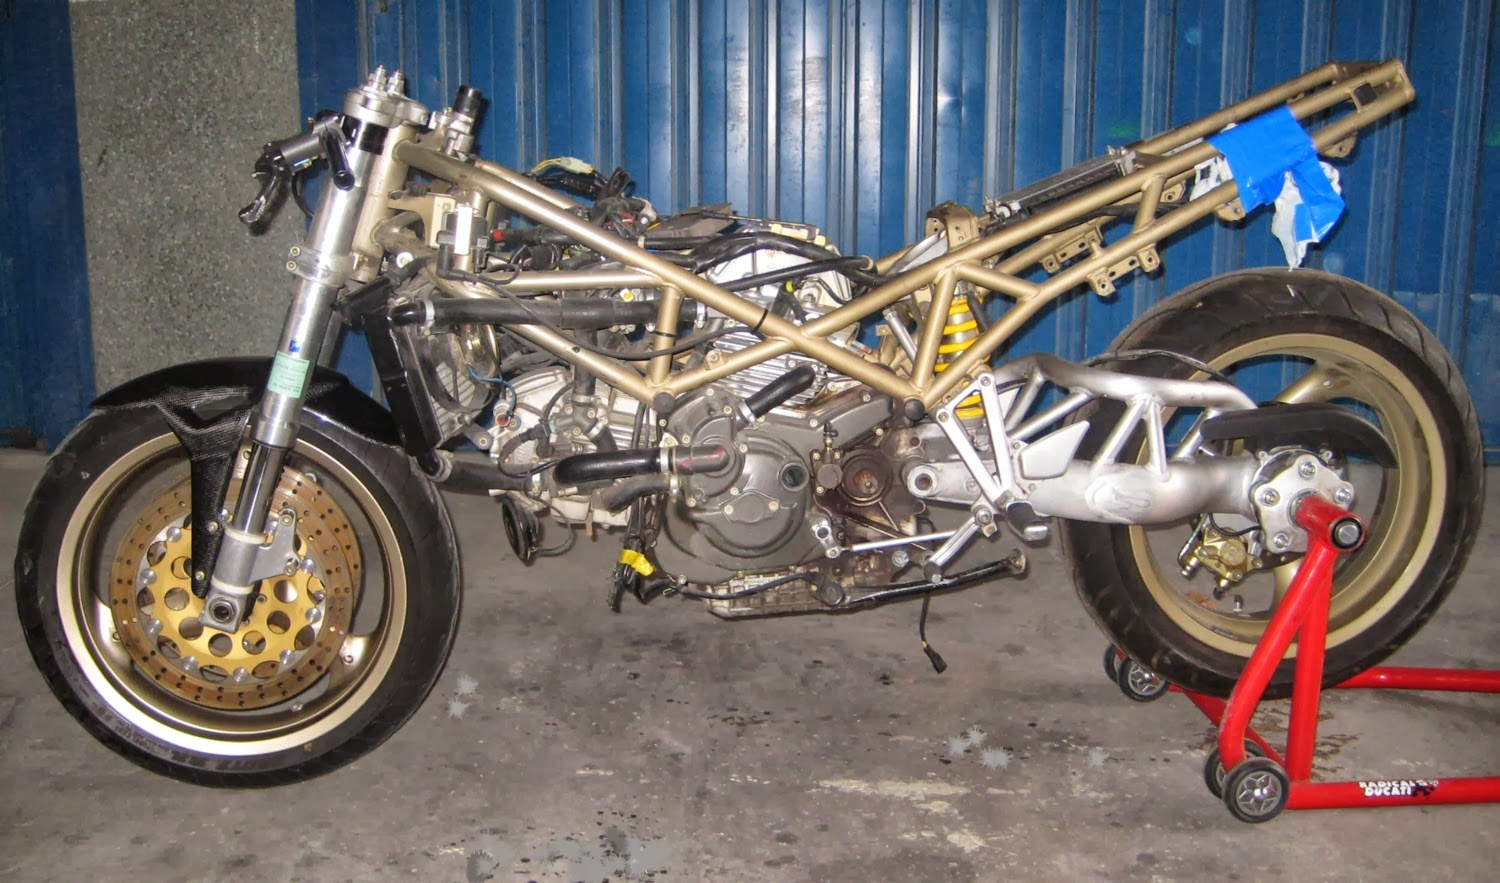 medium resolution of  first steep dismount the bike and fit the s2r single side swingarm and wheel mounting the clip ons and began the reposition of the electrical wiring and